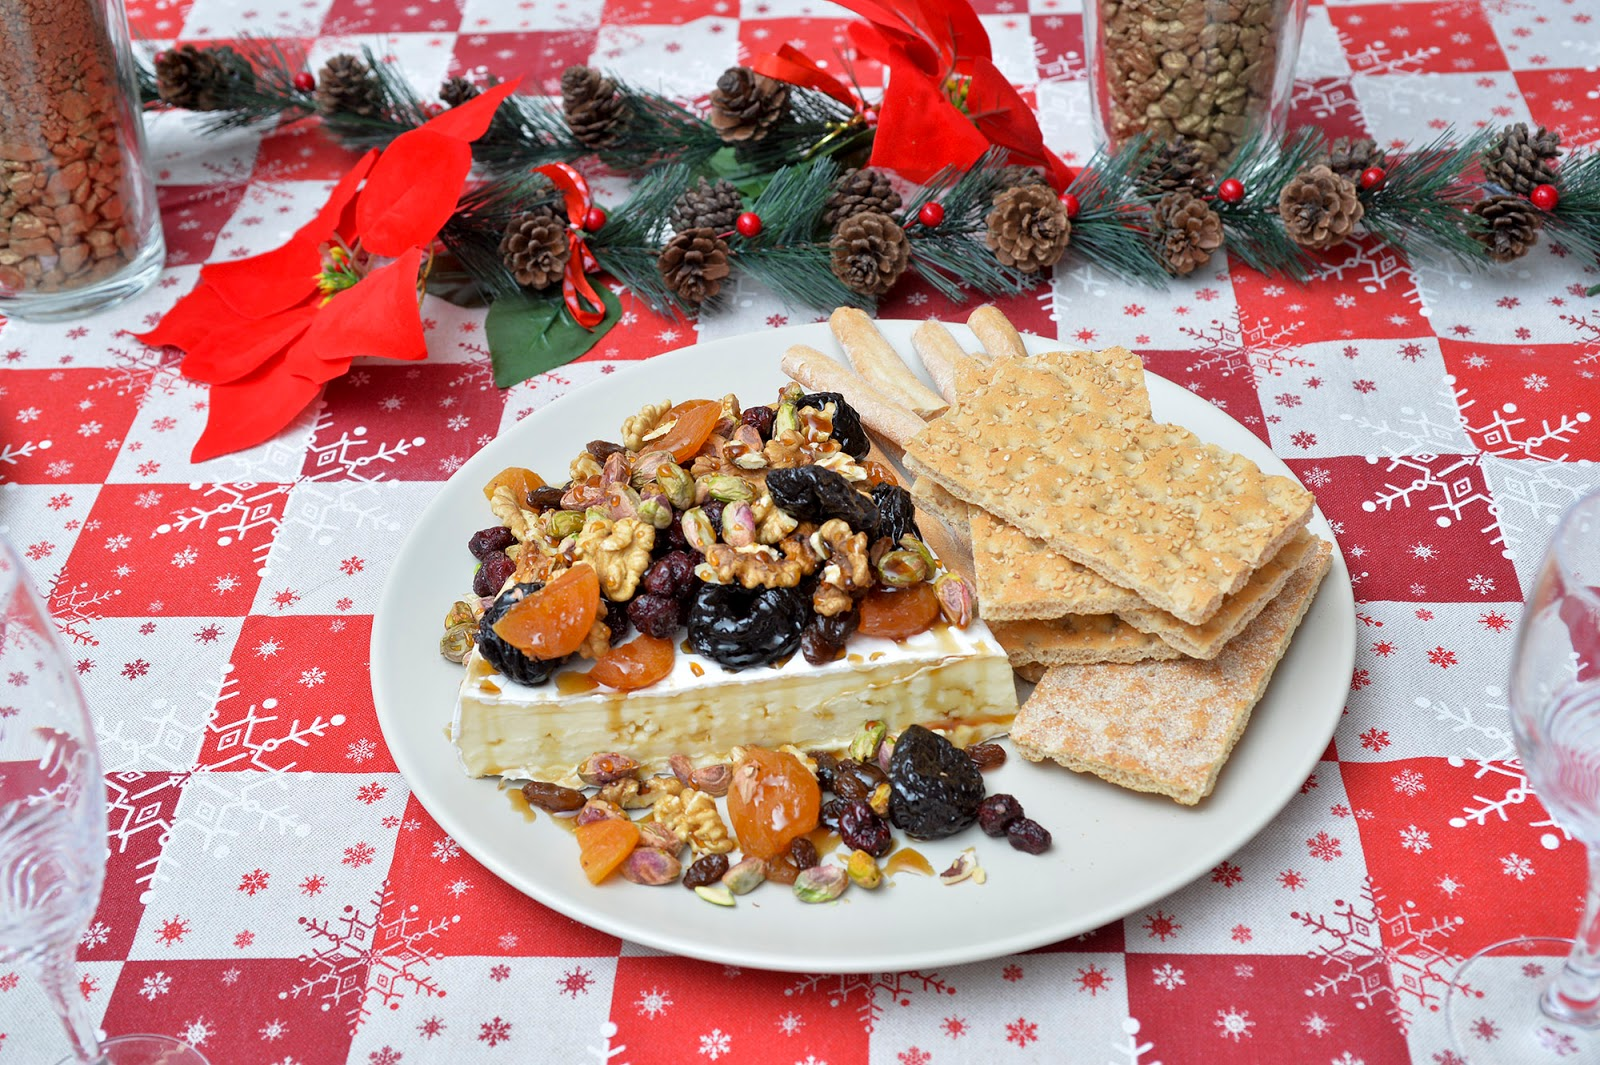 spain family traditions holidays customs baked brie dry fruit nuts